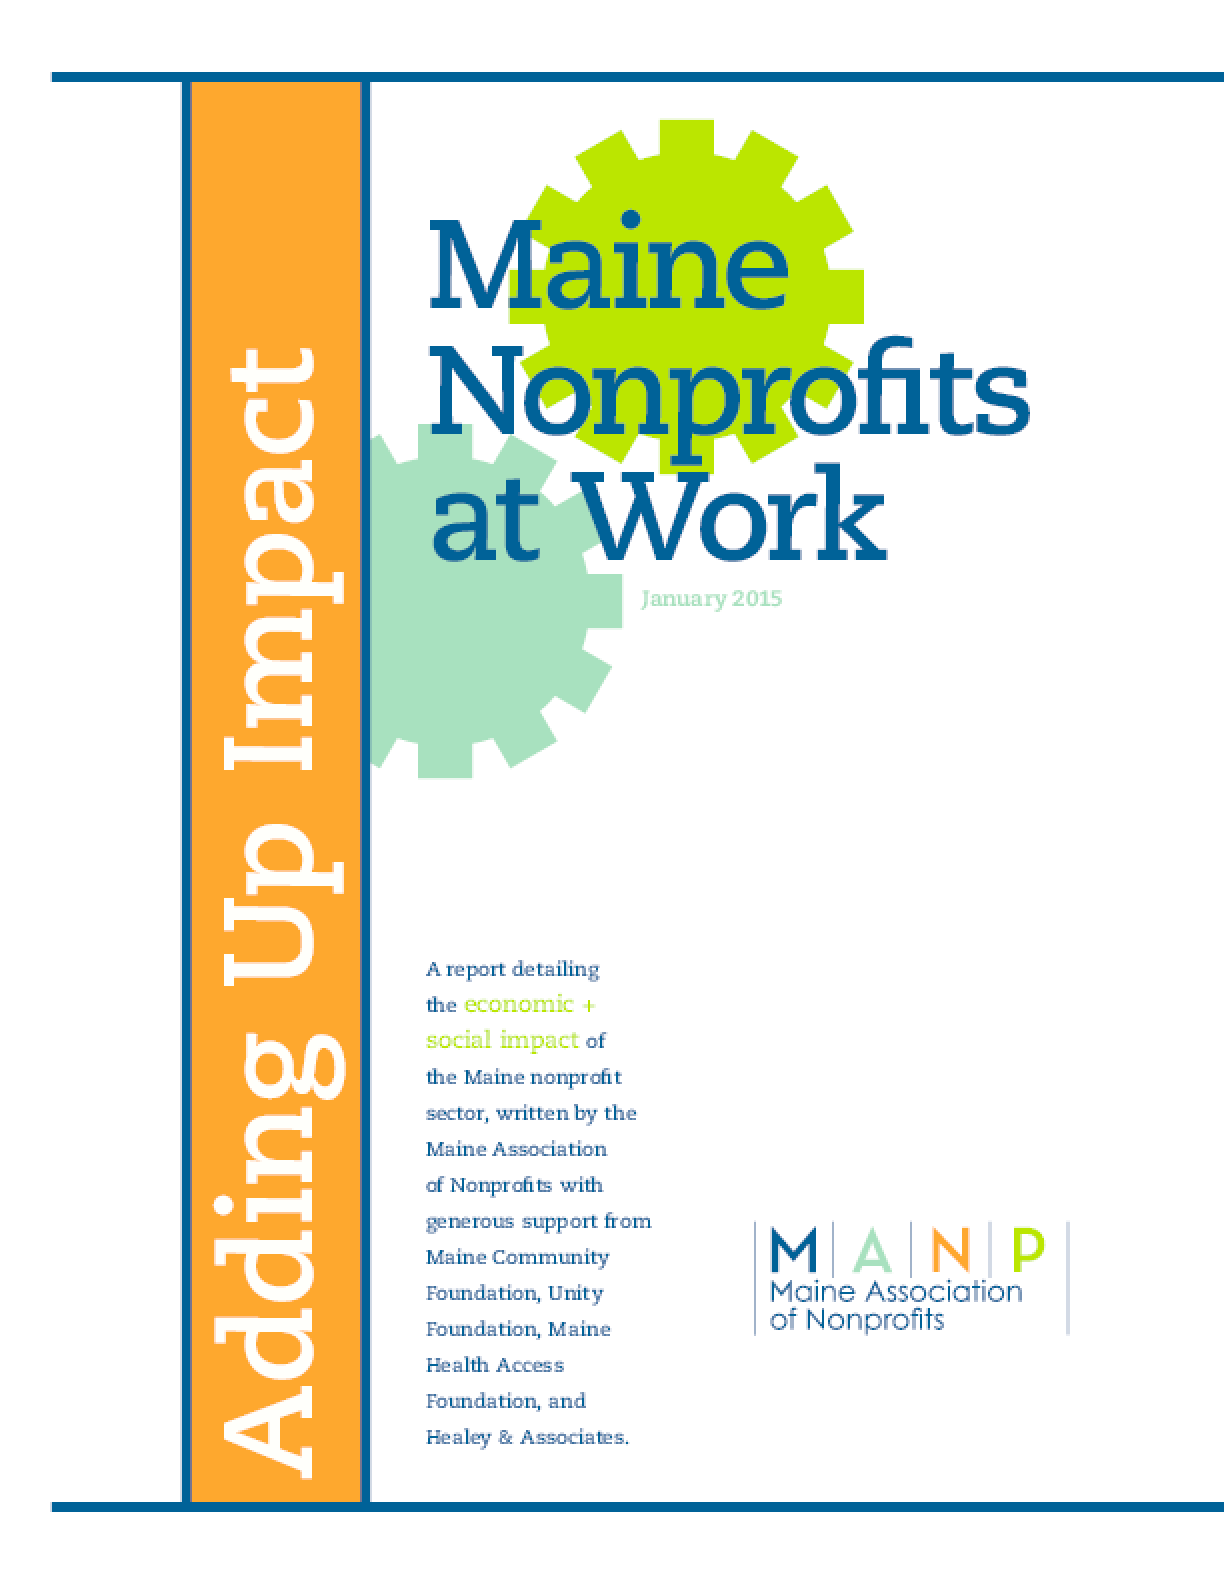 Maine Nonprofits at Work